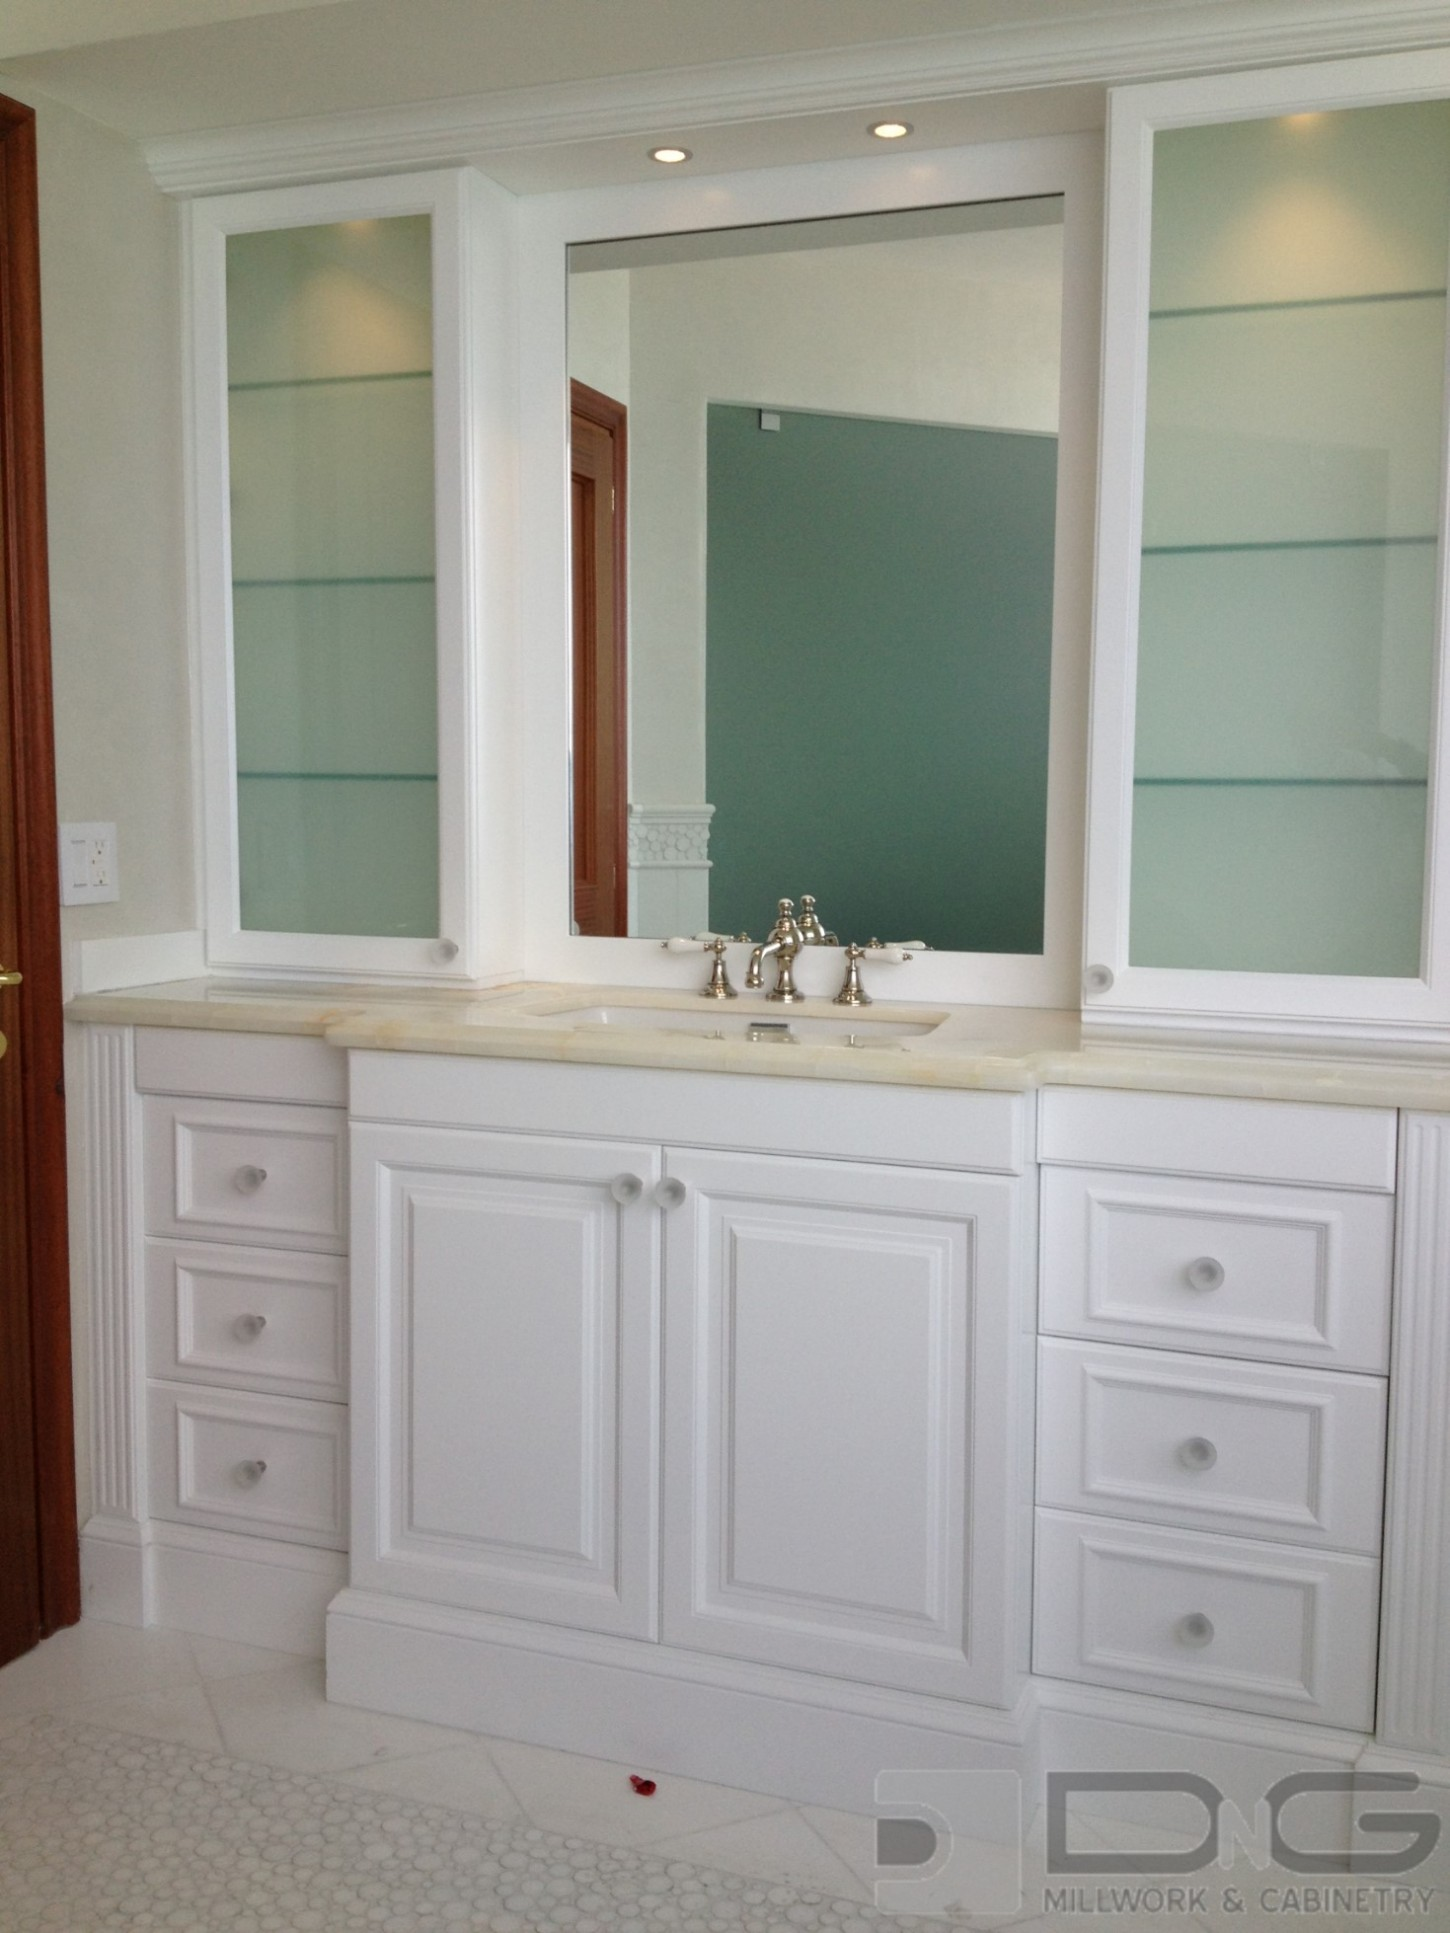 Custom Bathroom Vanities Melbourne Fl bathroom vanities miami. full size of bathroom beautiful bathroom